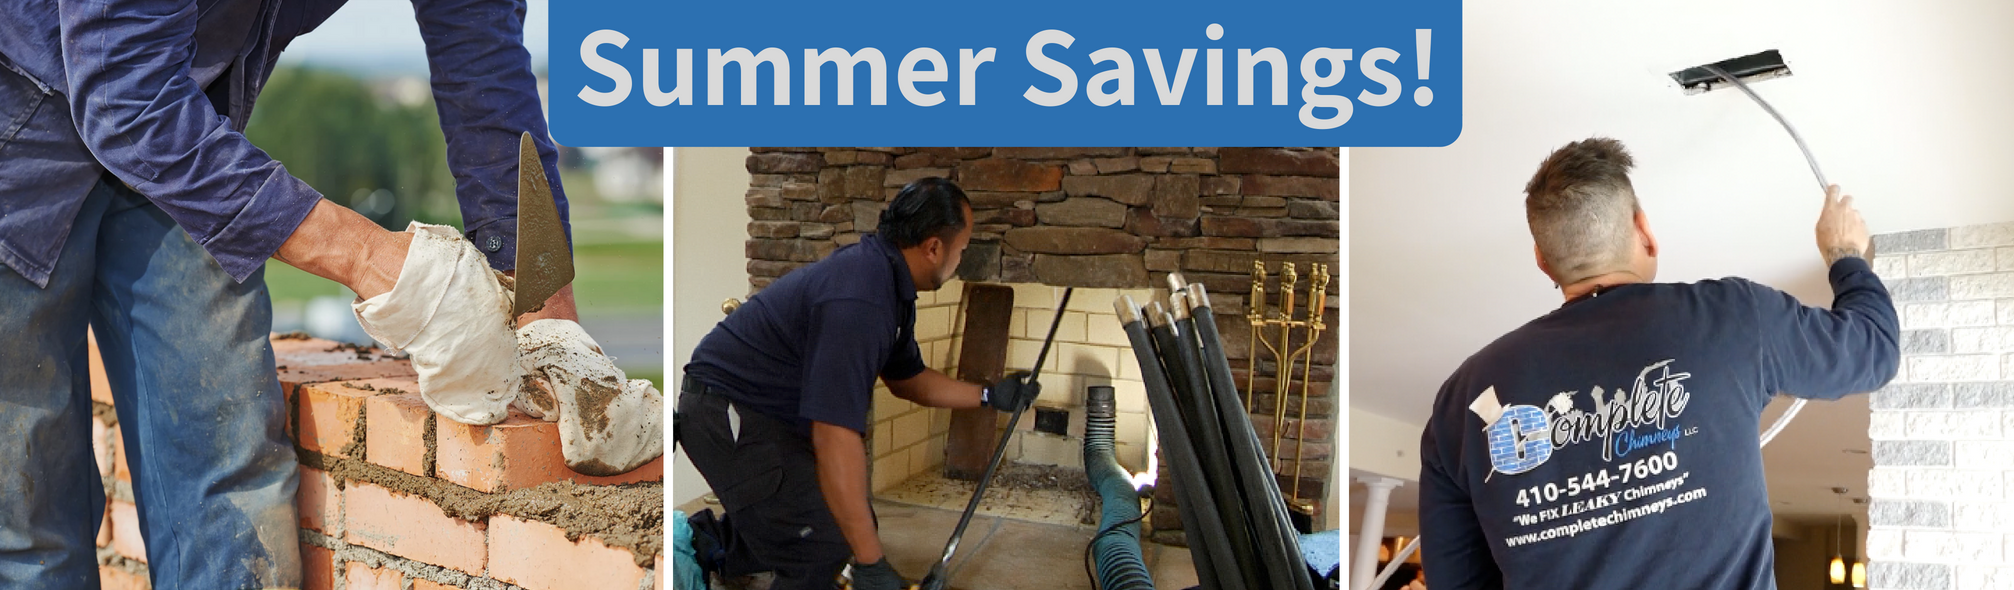 Summer Savings Banner